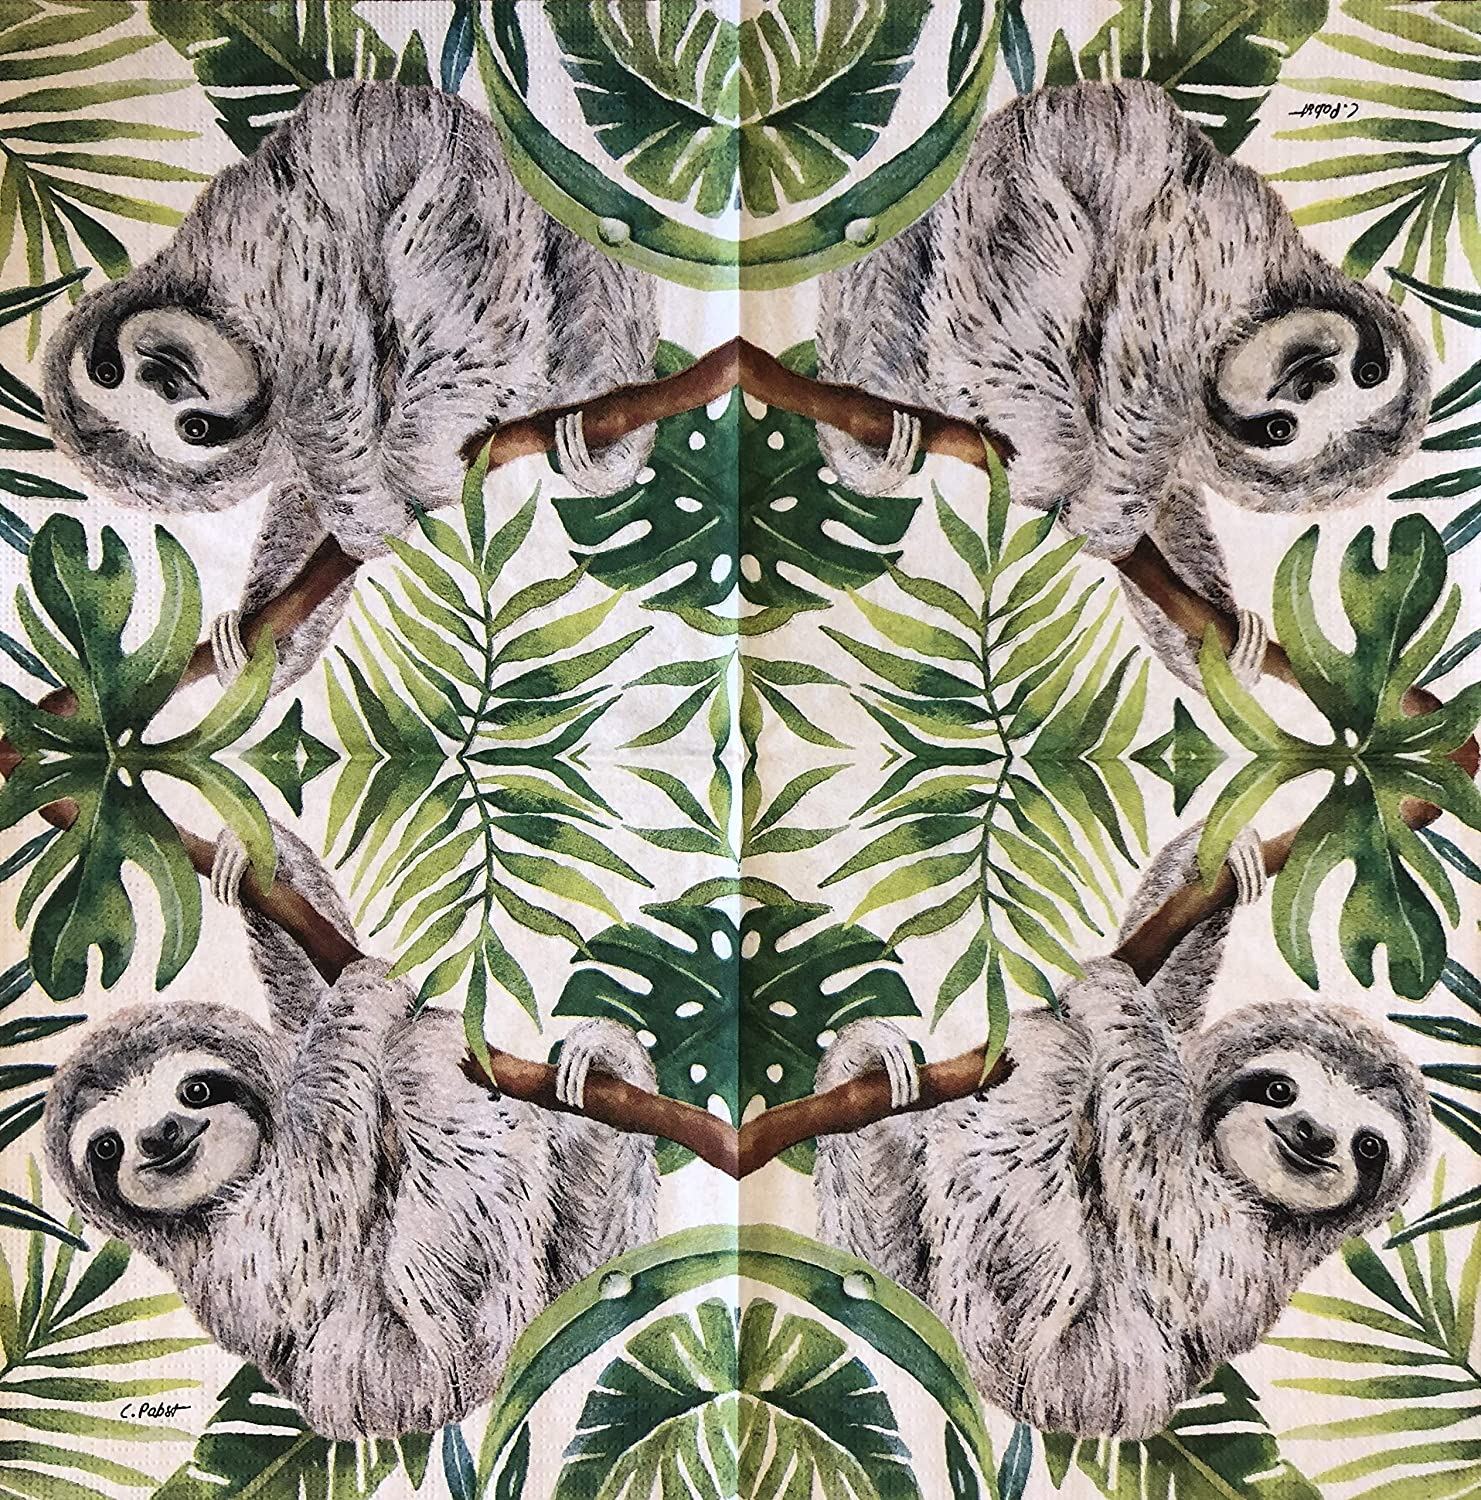 2 single Paper Napkins for DECOUPAGE Crafts Collection Party Sloth Lemur Asia Animals Wild Nature